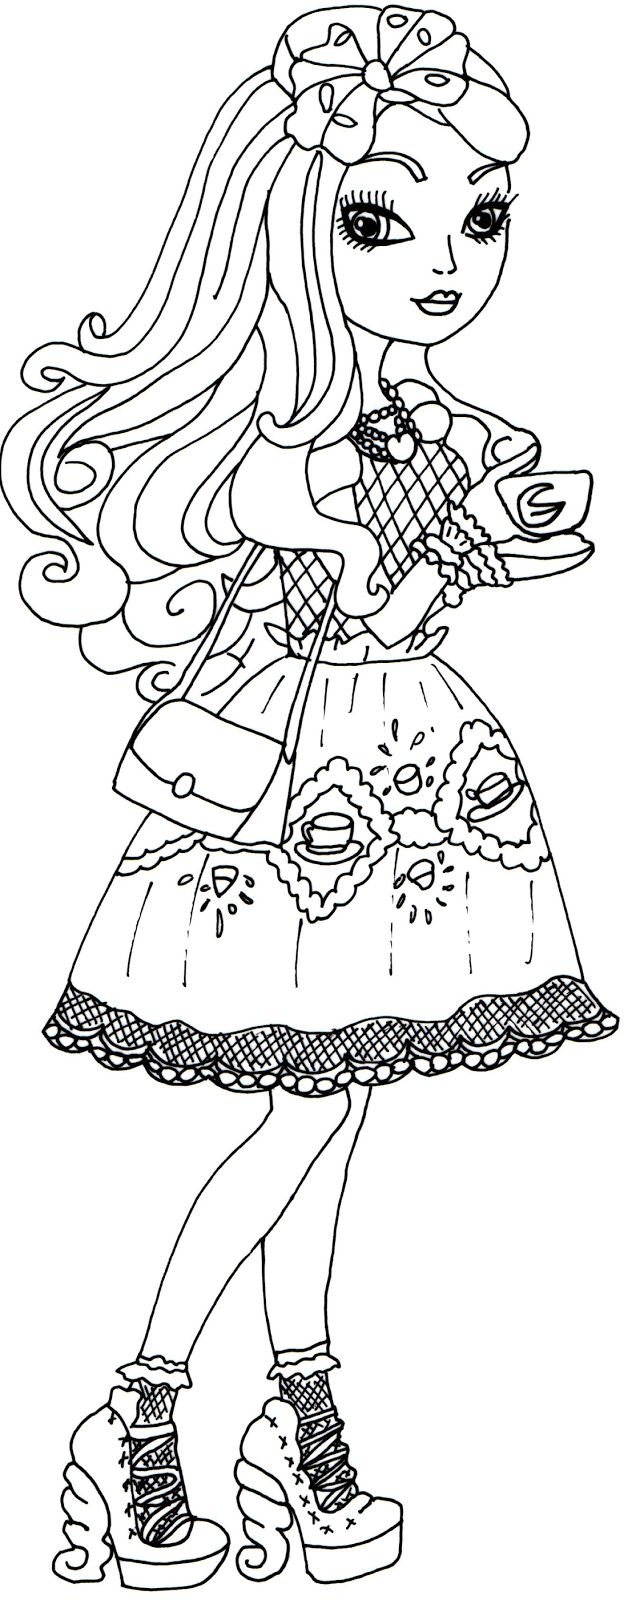 2546 best coloring pages images on pinterest coloring books